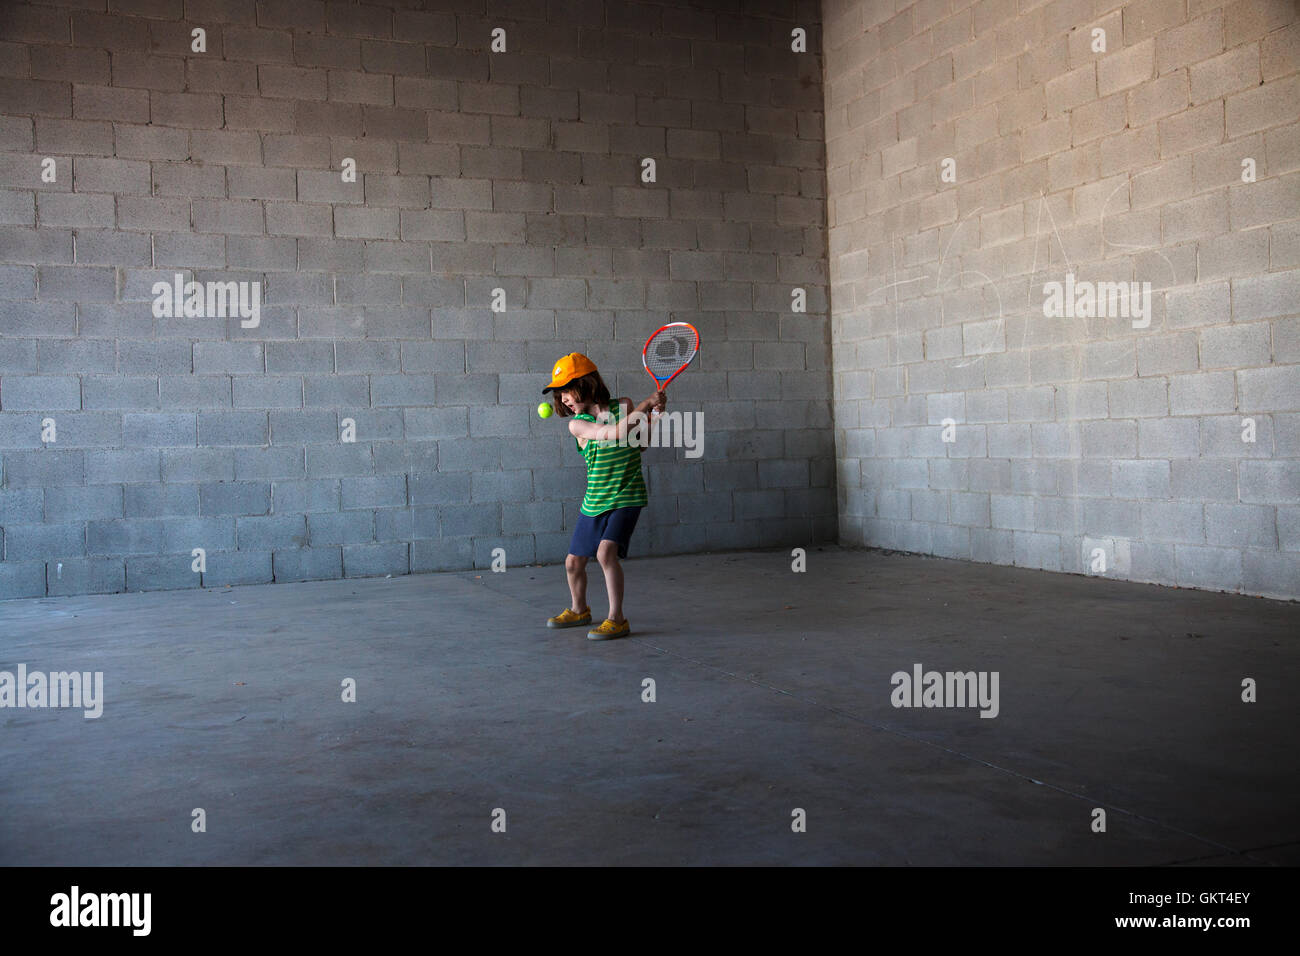 7 year old boy playing tennis in an empty half built shop. - Stock Image